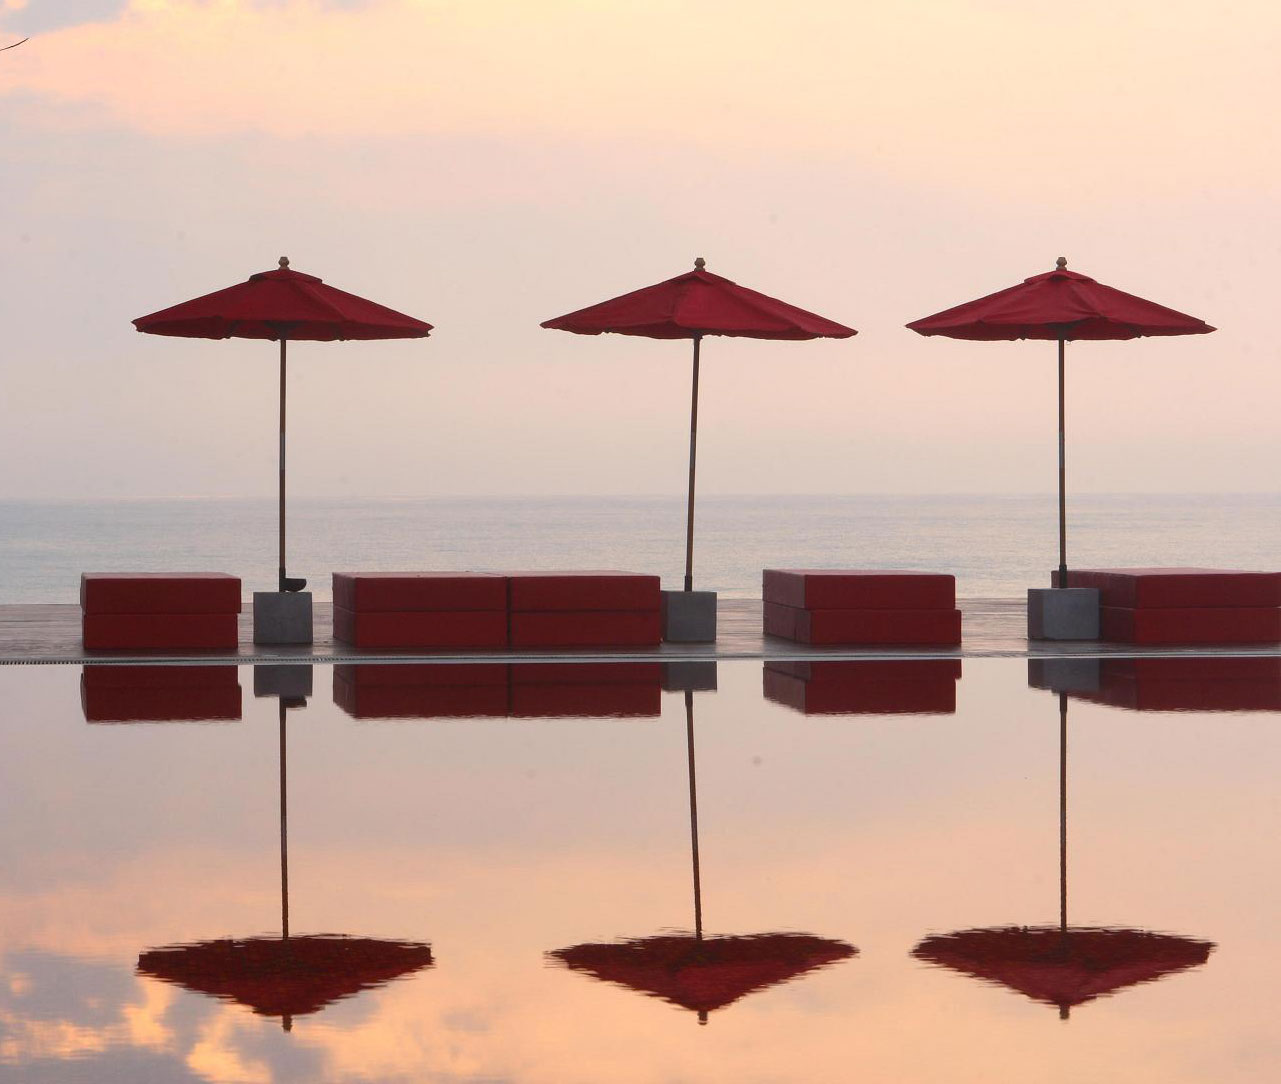 Tle Library, Koh Samui. View from the red pool to the sea. Photo: The Library